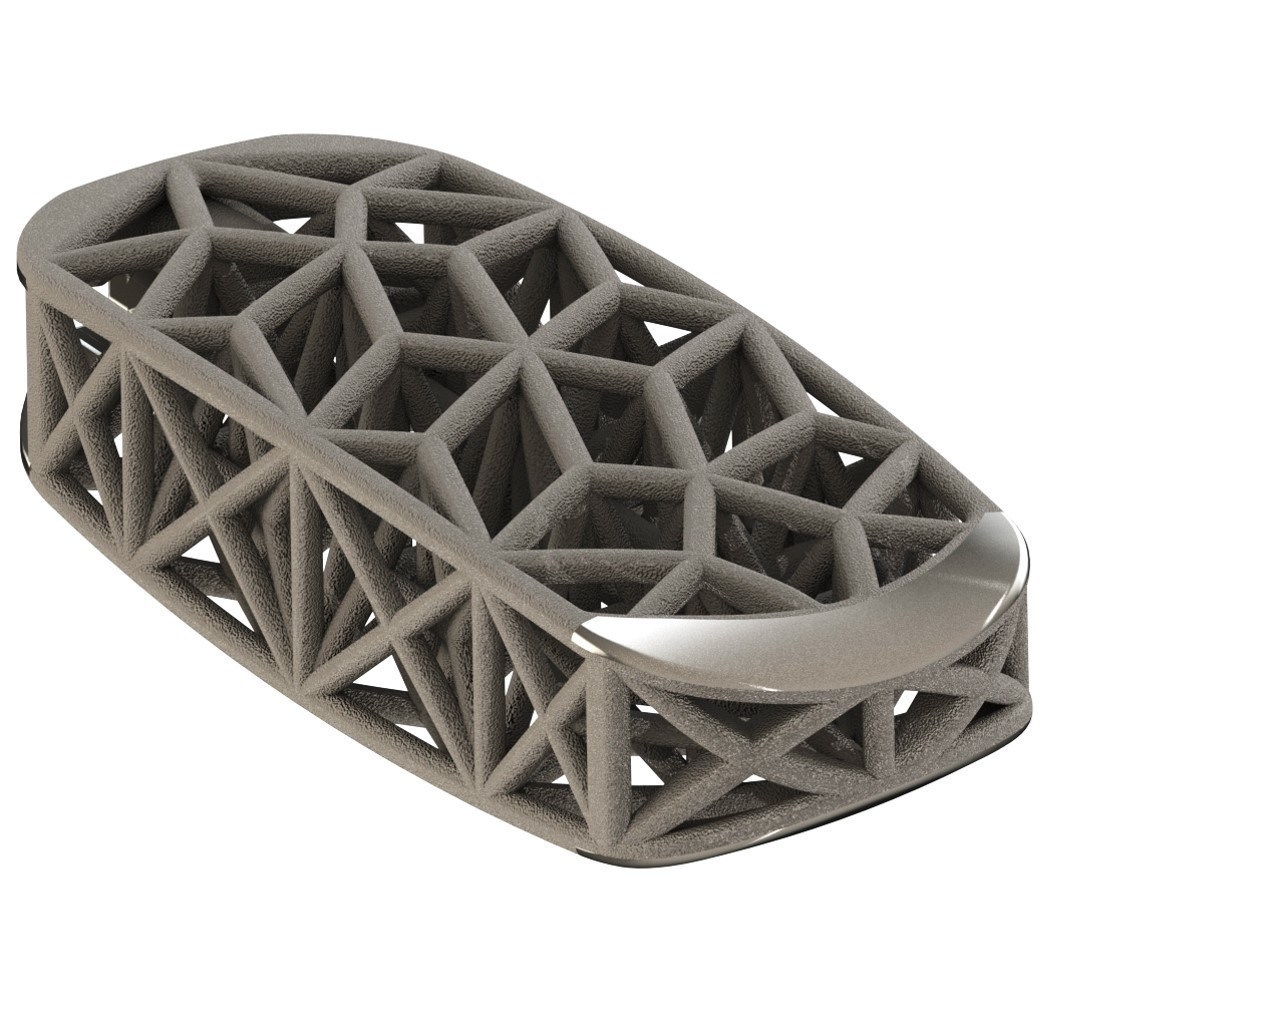 4WEB Medical wins FDA clearance for their 3D Printed spine cage